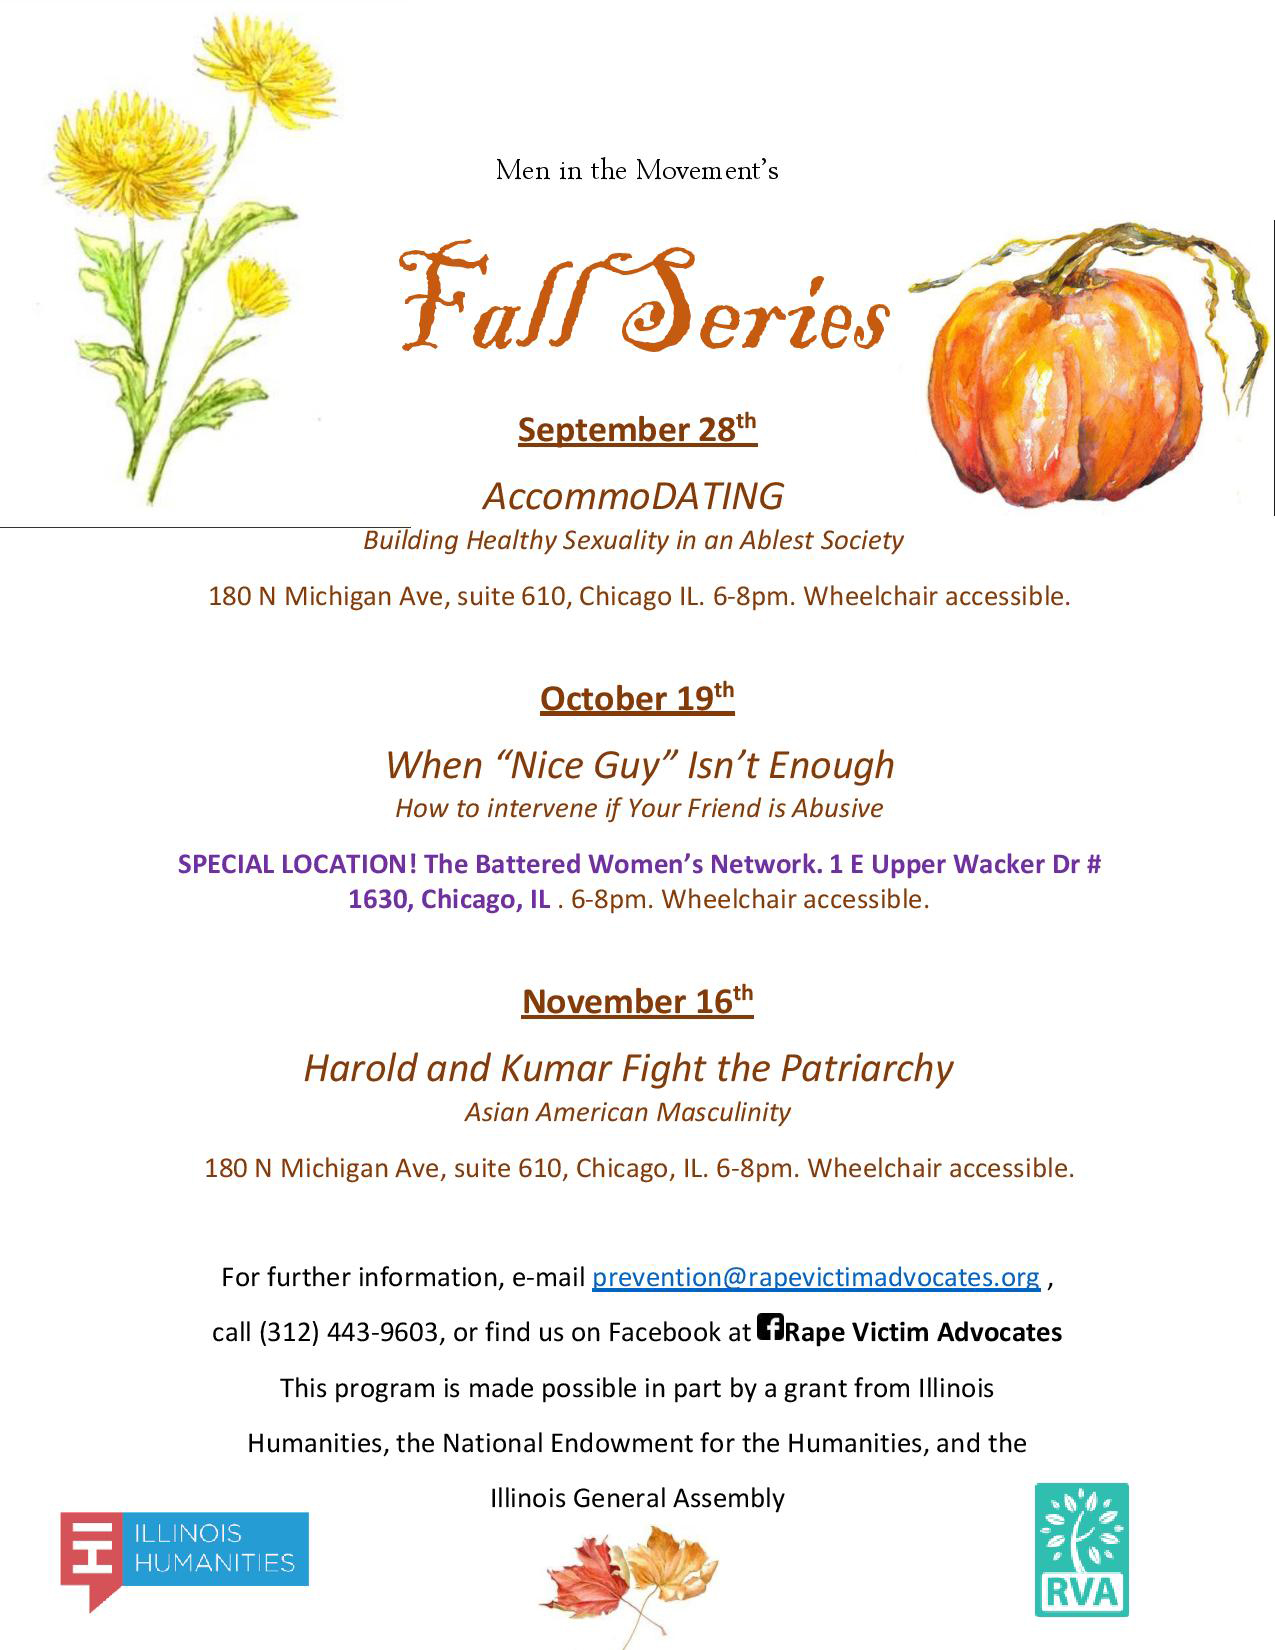 RVA Men in the Movement Fall Series flyer